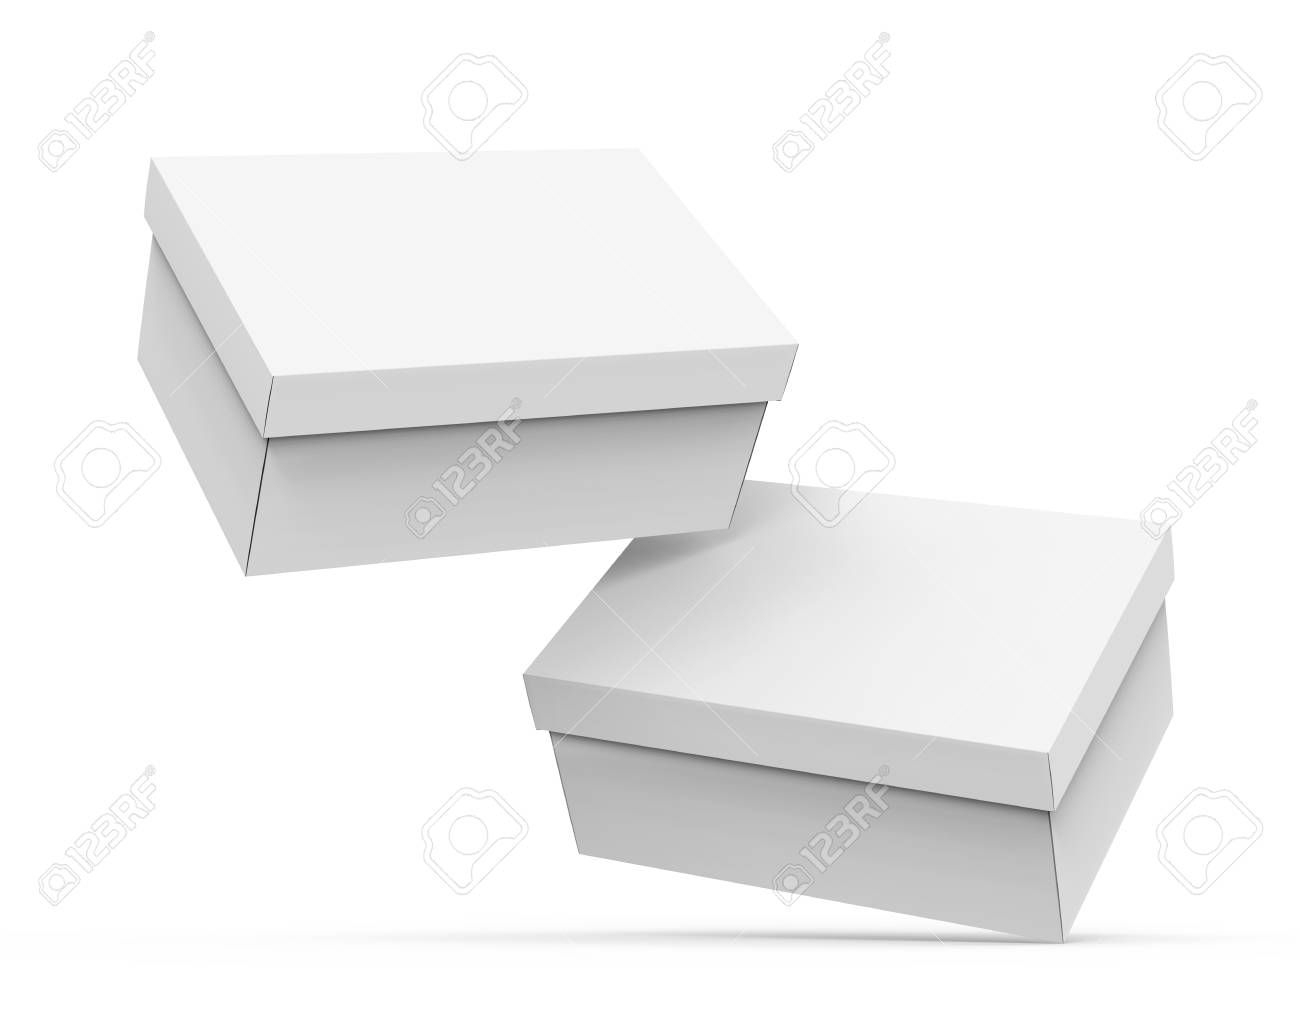 Blank Paper Box Template Two Boxes Mockup With Lid In 3d Rendering Floating